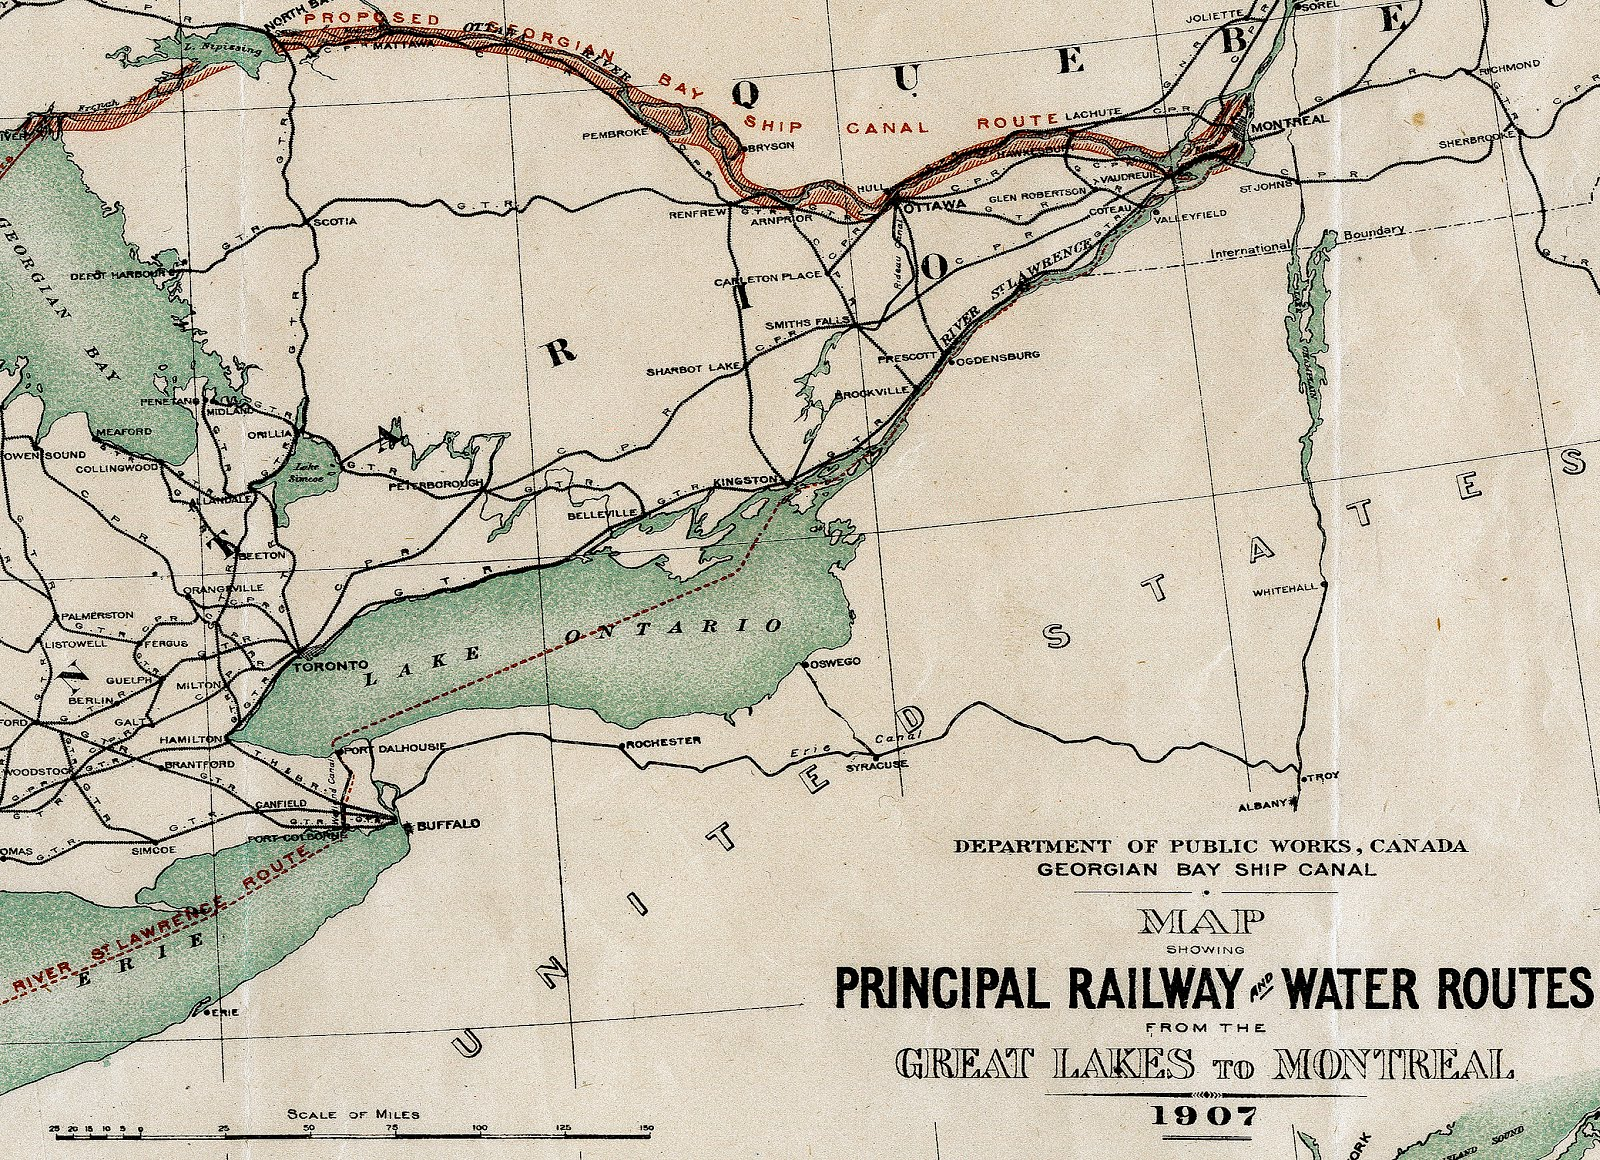 the georgian bay ship canal was intended to create a direct route for ocean going vessels between the port of montreal and the upper great lakes